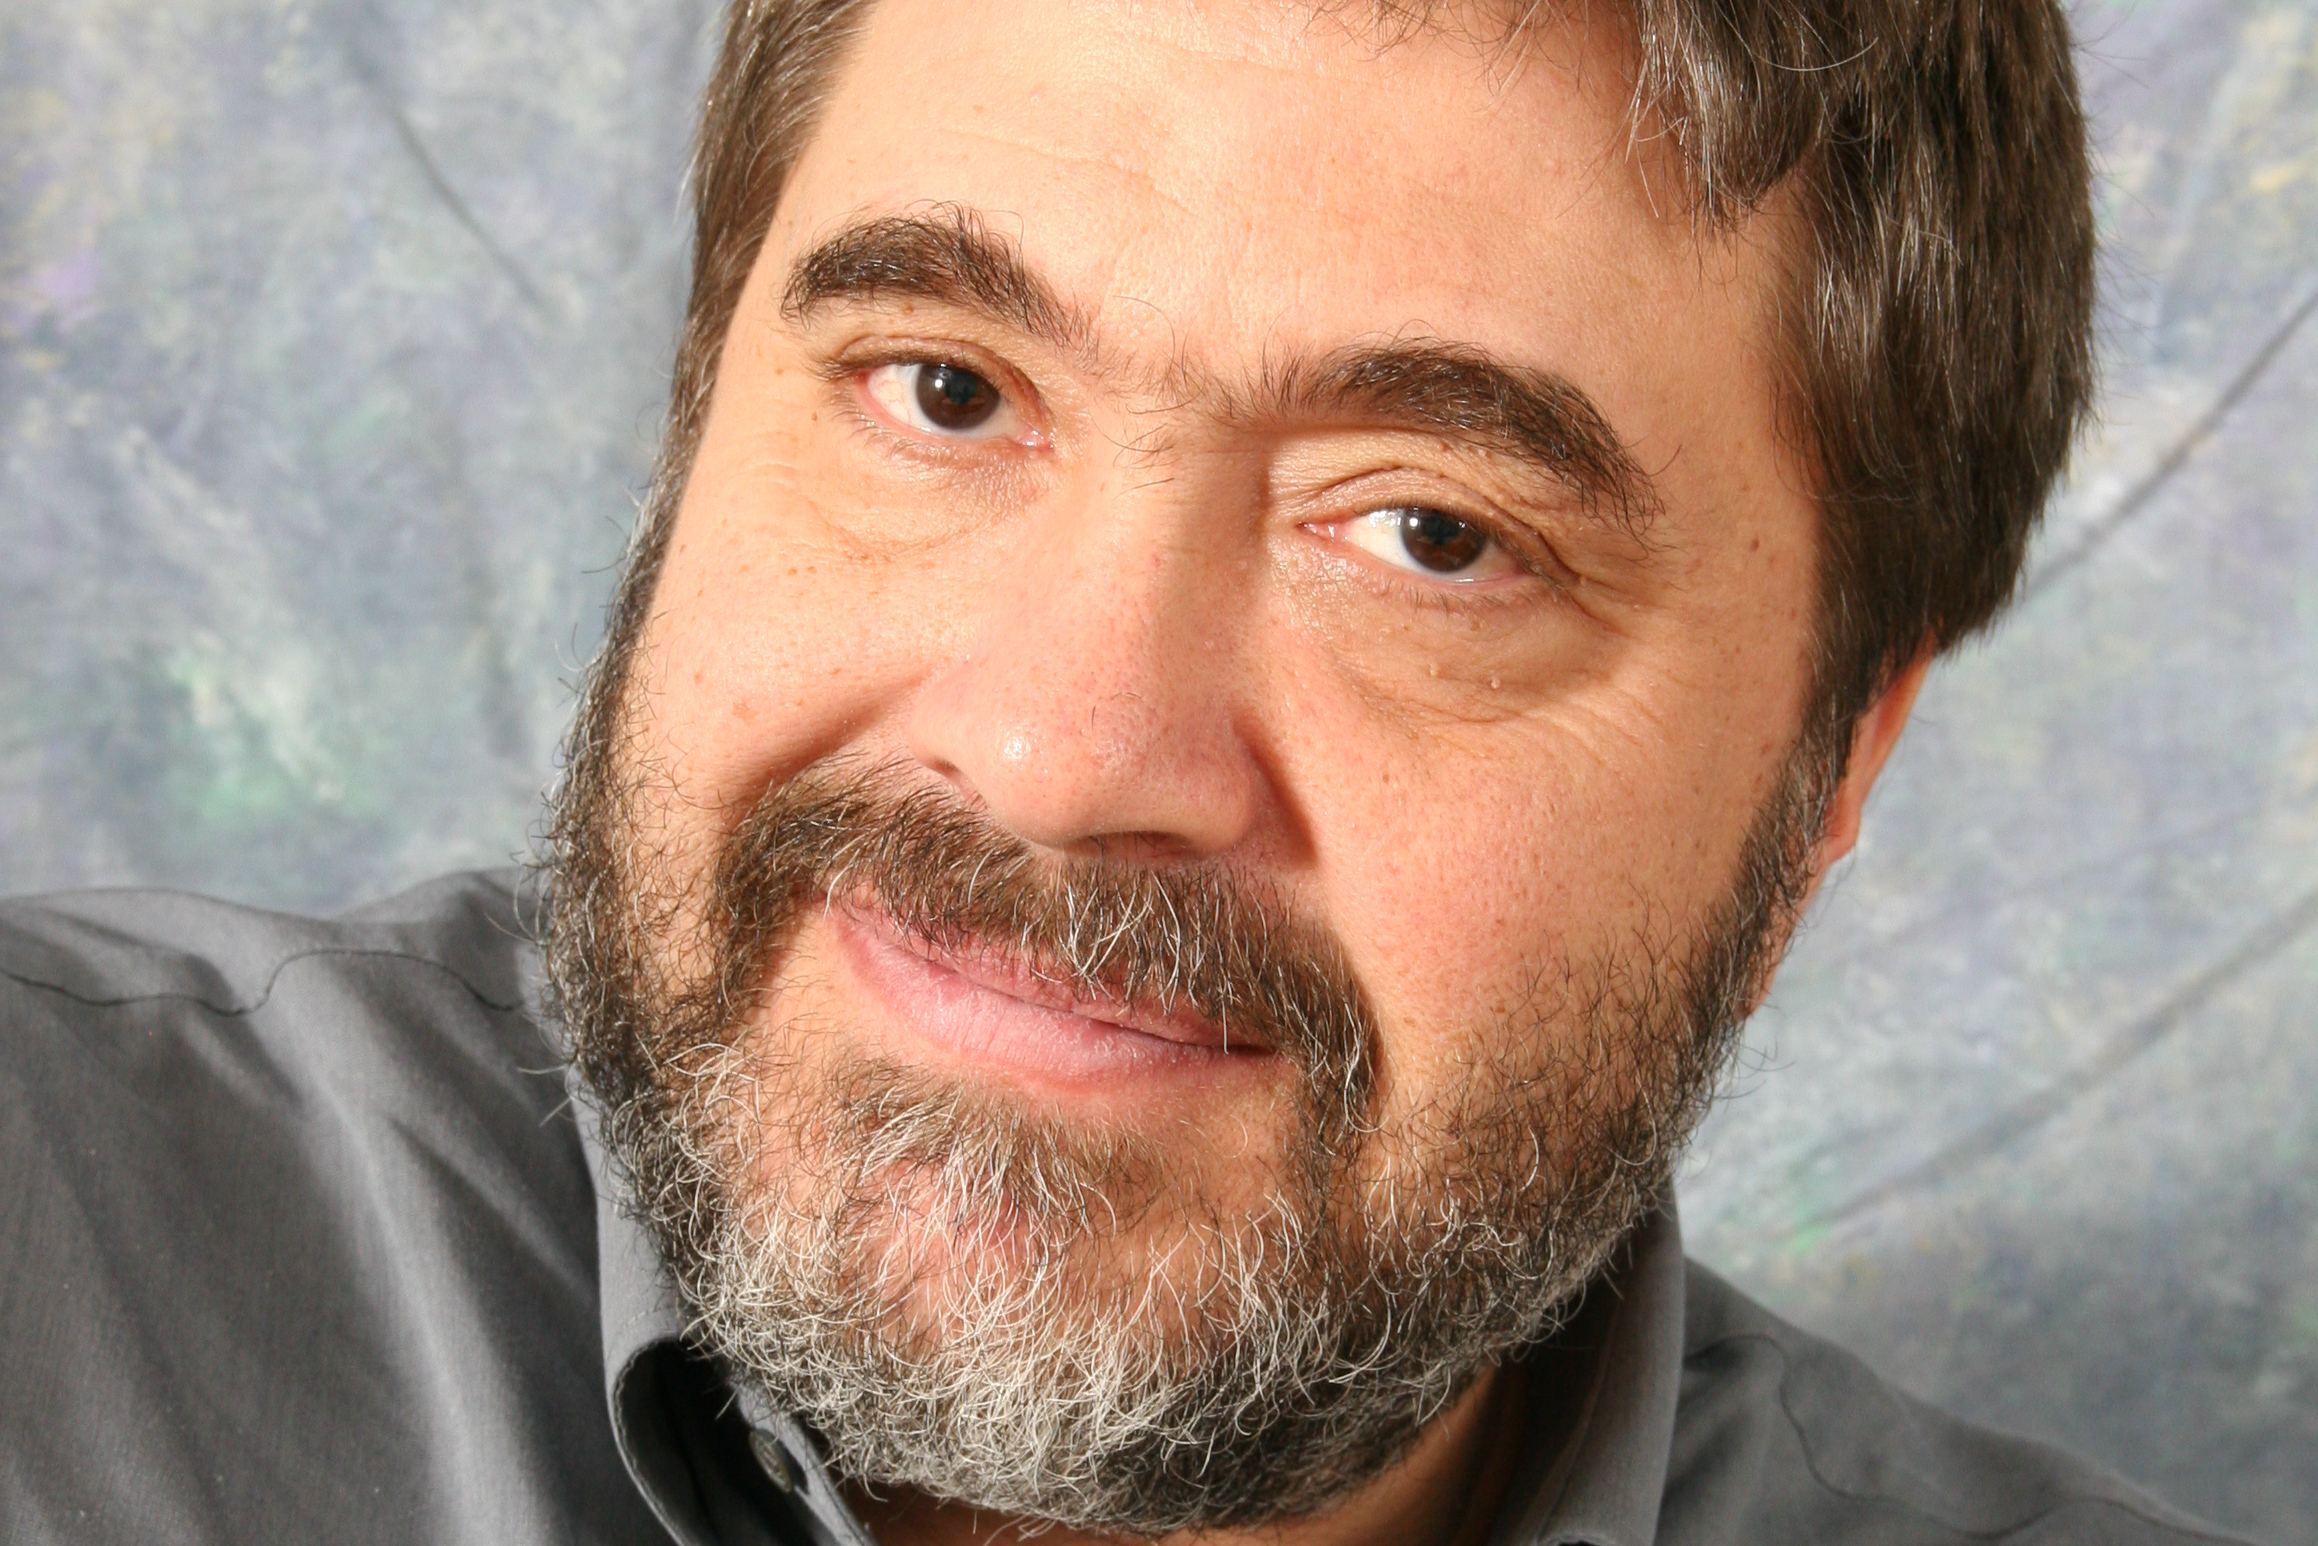 OurCrowd CEO Jon Medved